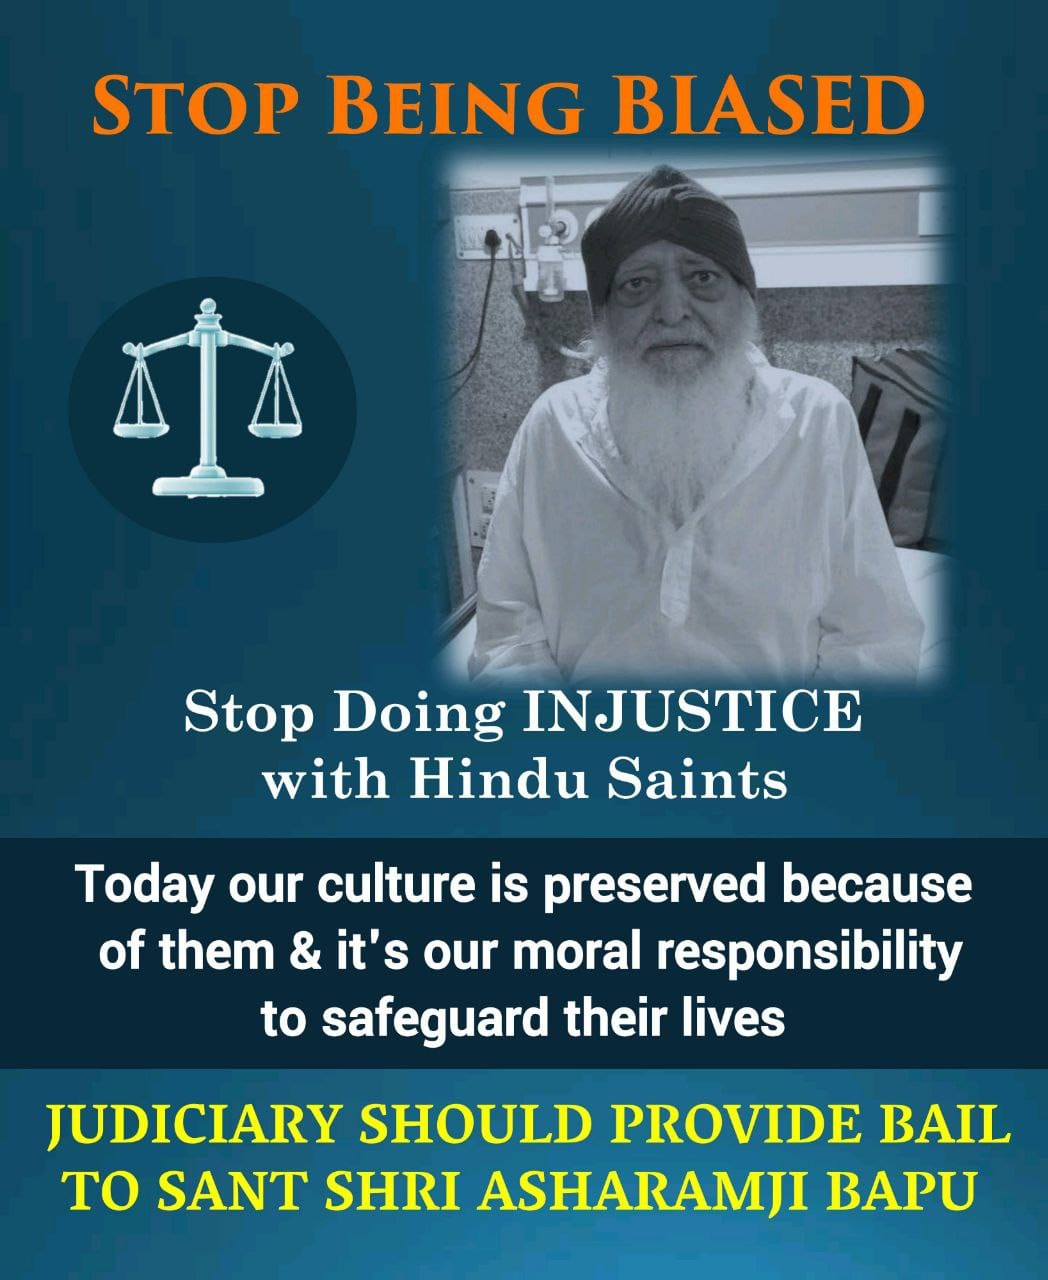 Justice for Bapuji Photo,Justice for Bapuji Twitter Trend : Most Popular Tweets